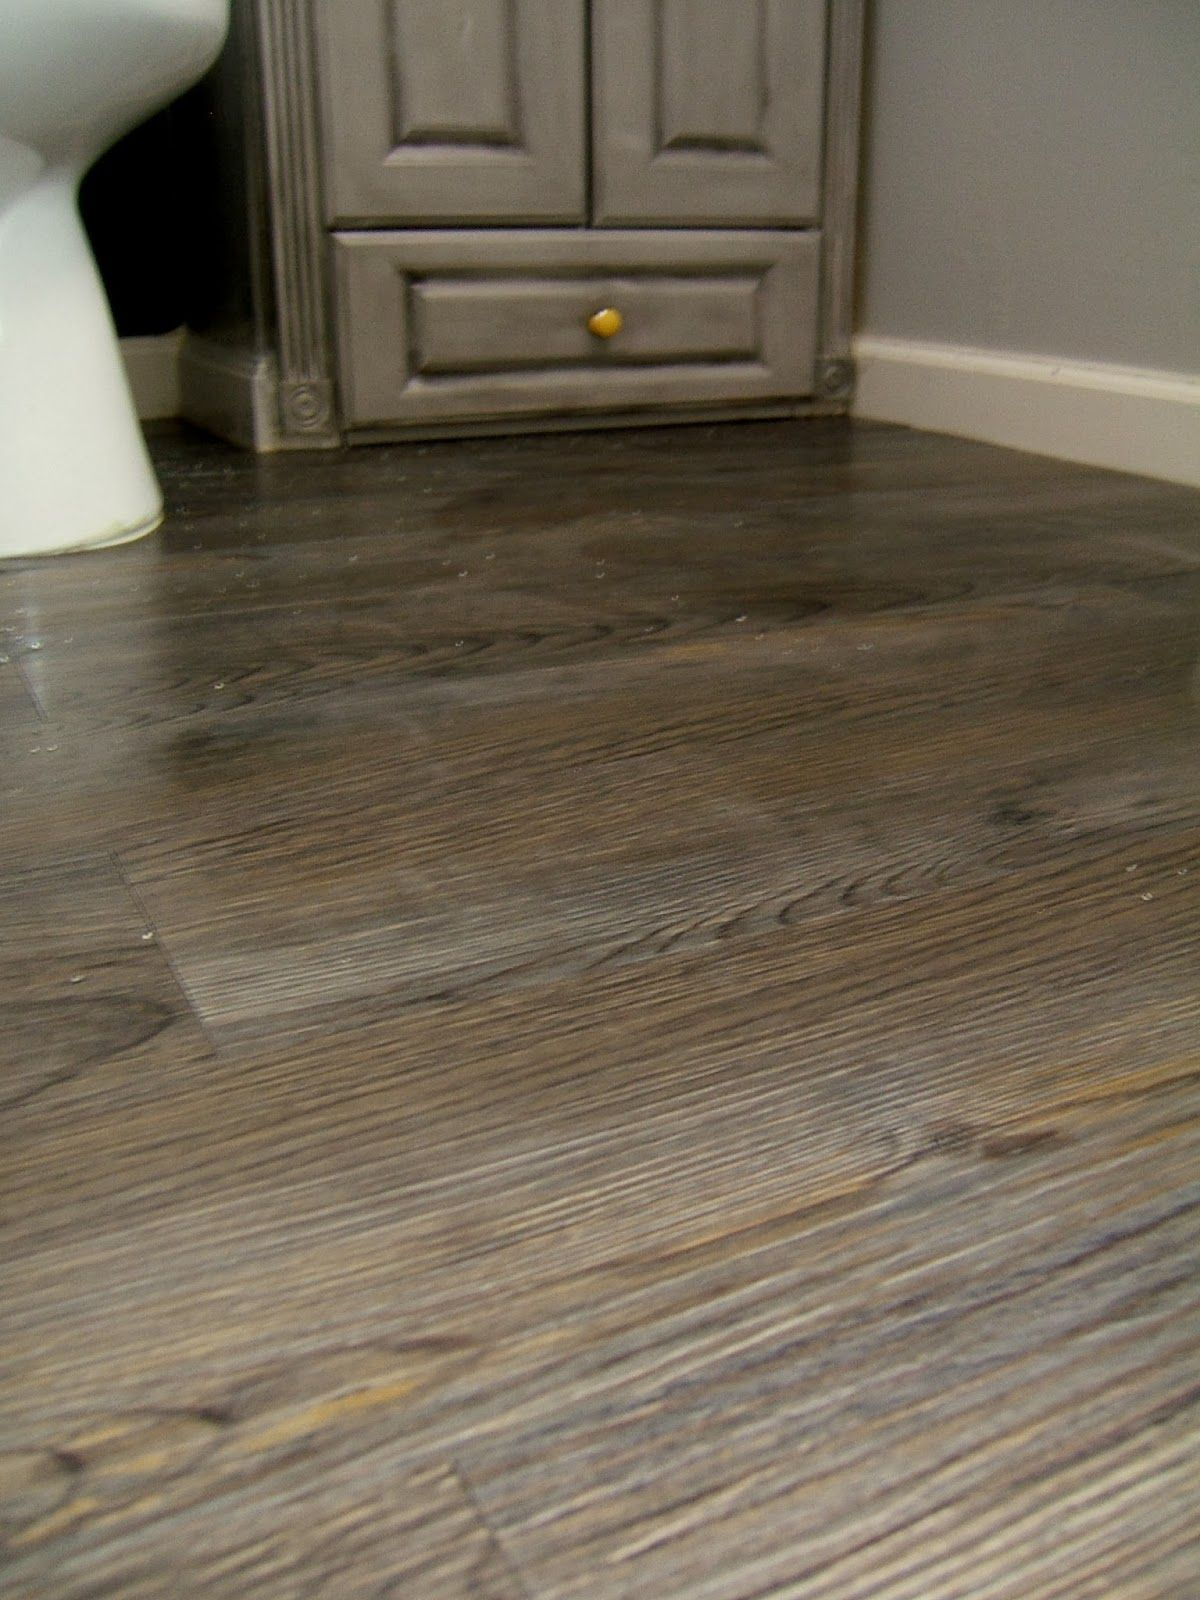 L Stick Luxury Vinyl Tile Flooring Resilient And Wood Floor Wb Designs